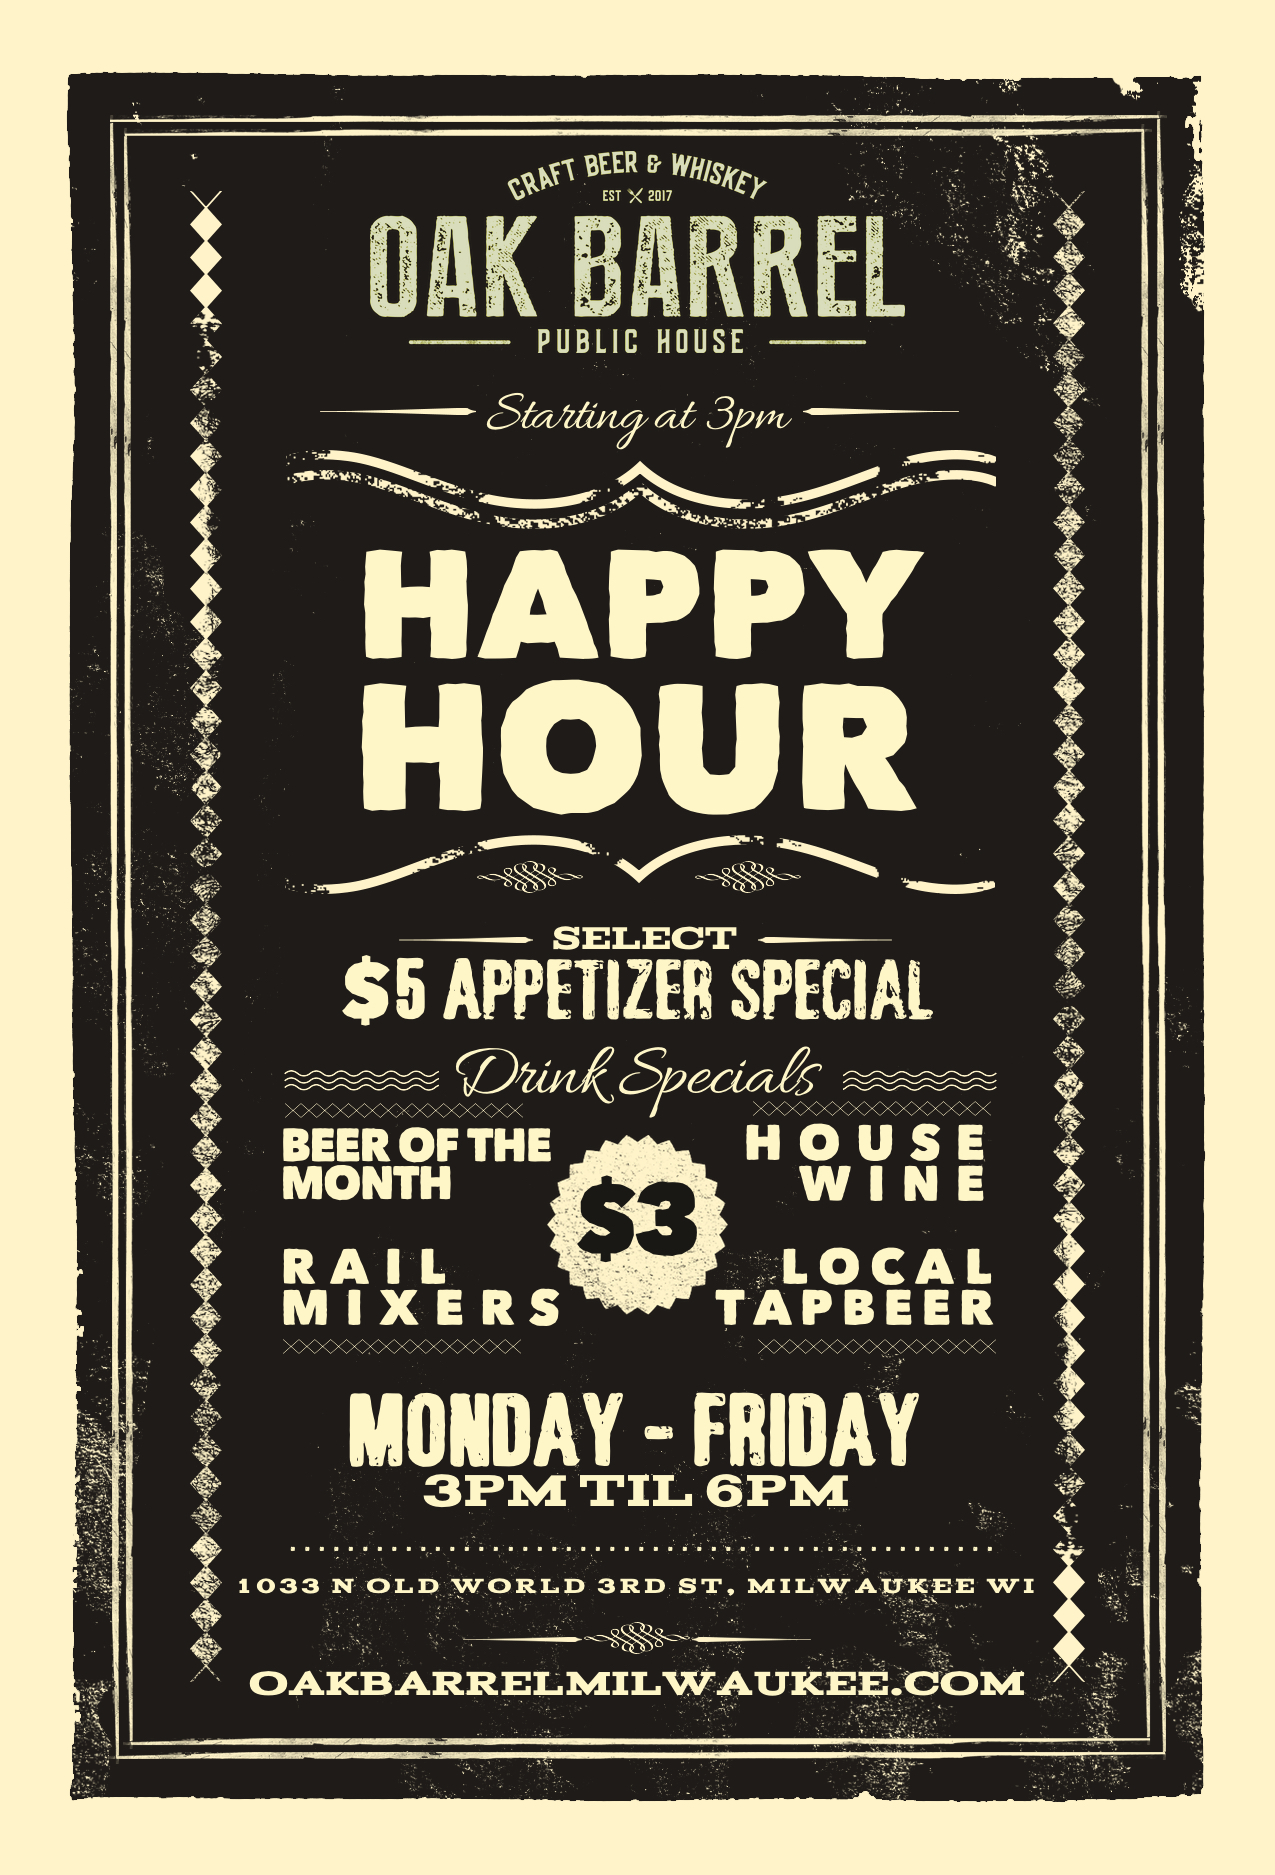 Happy Hour - Monday through Friday - 3pm - 6pm